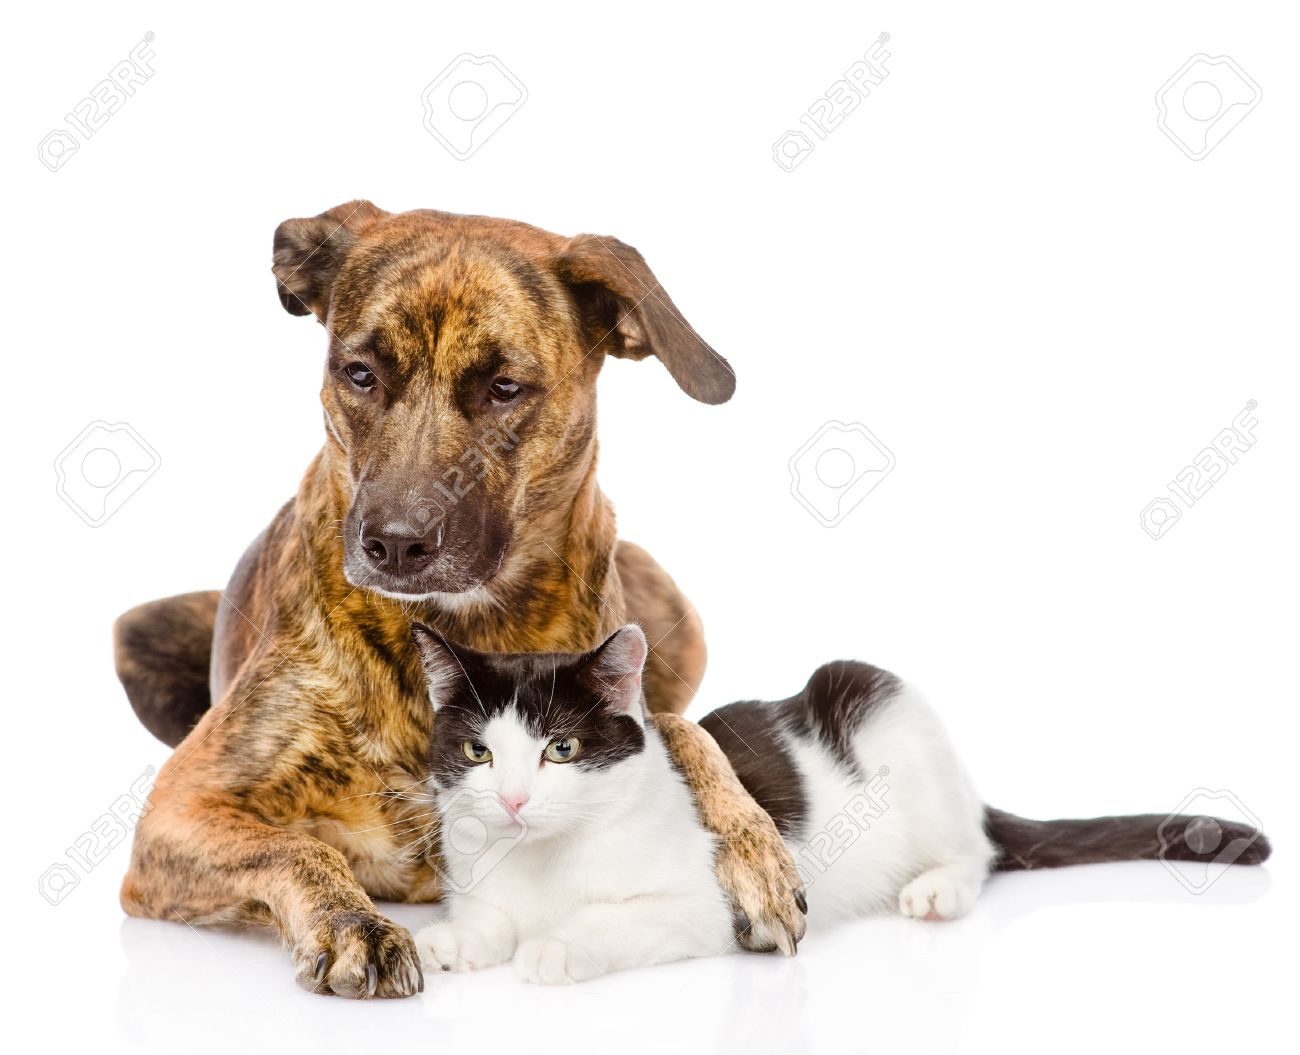 Cat Dog Breed Mix Mixed Breed Kitten Large Dog